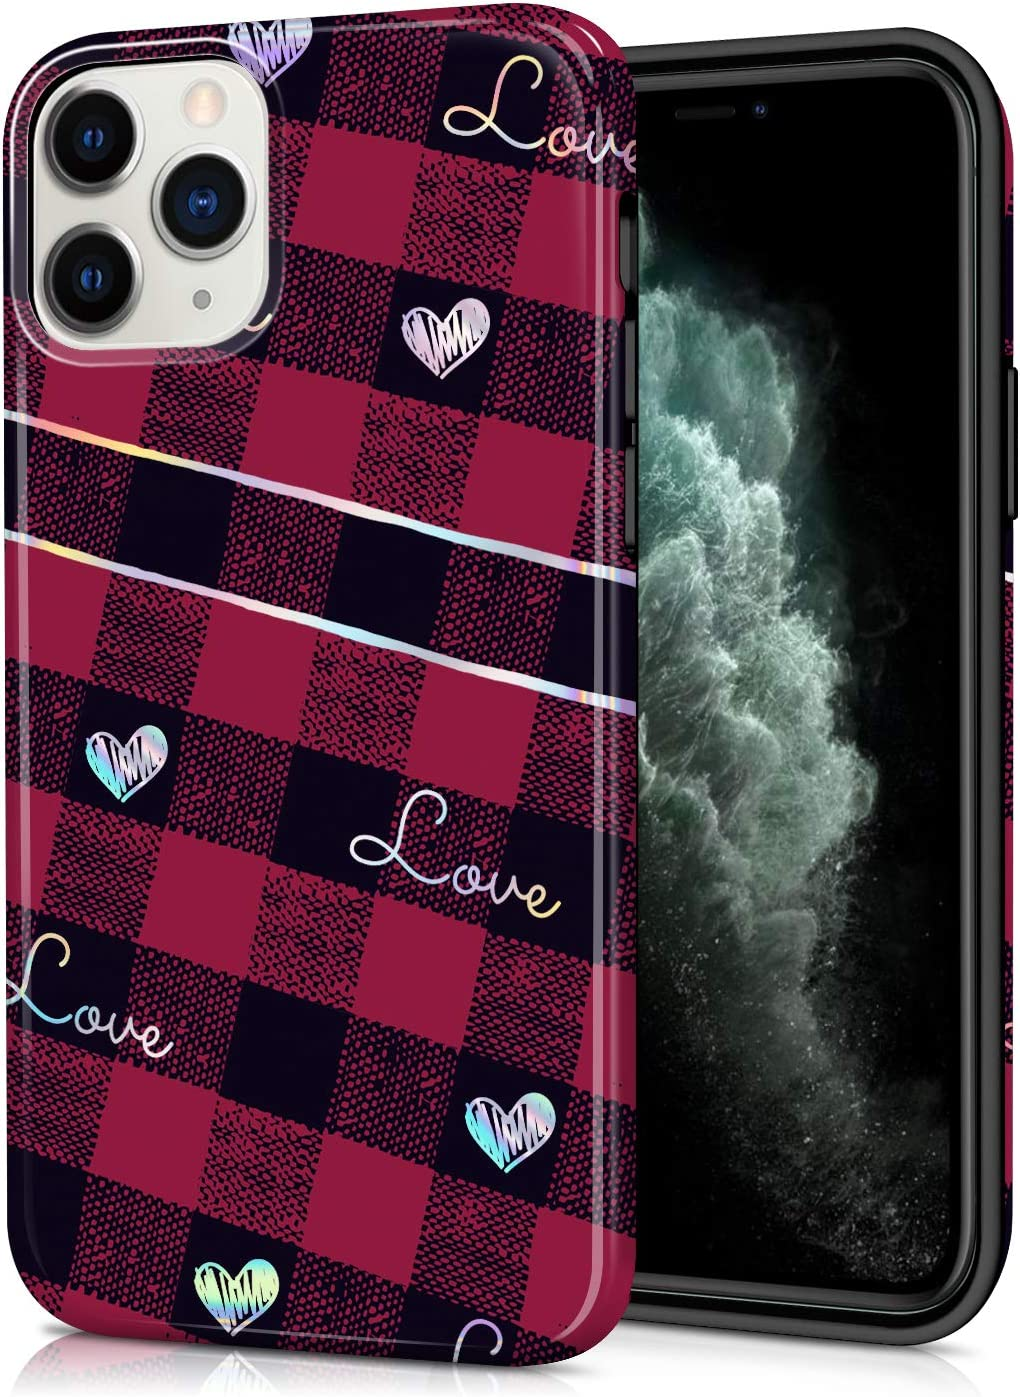 "CAOUME iPhone 11 Pro Max 2019 Release Case Holographic Red Love Plaid Heart Cute Symmetry Protective Stylish Cases for Apple Phone(6.5"") Cover with Silicone Bumper Defender Camera and Screen"